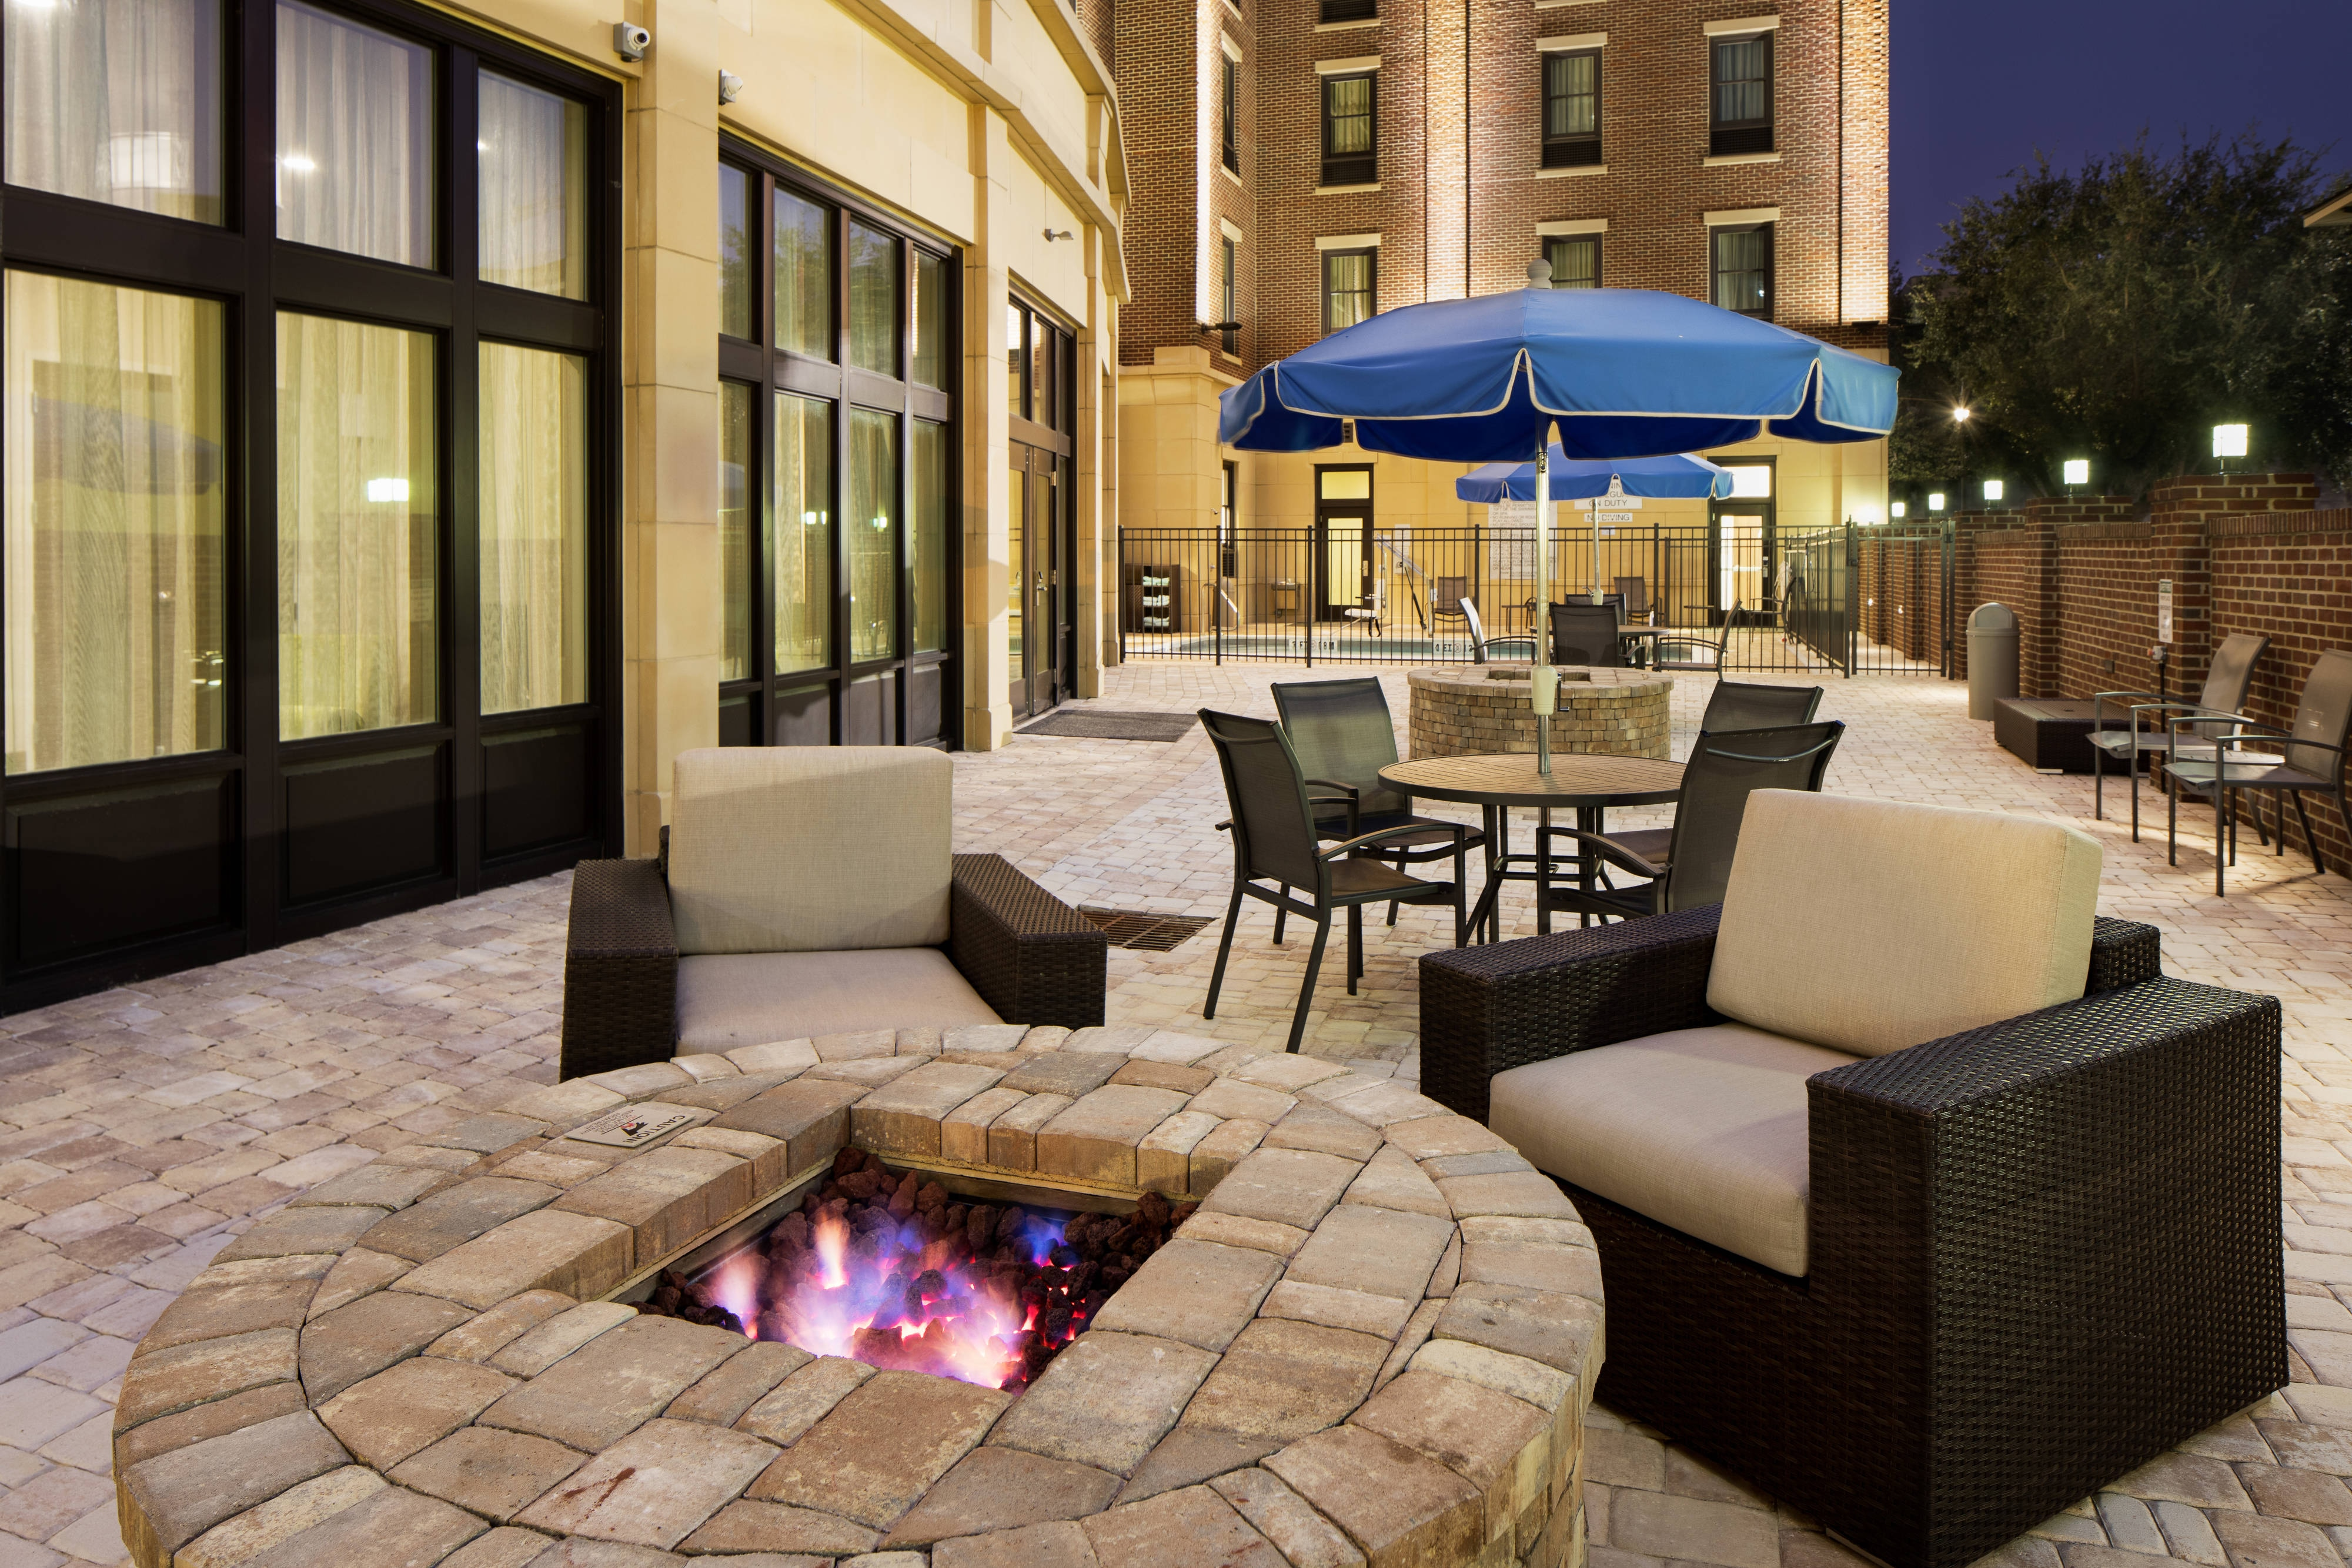 Our outdoor fire pit is the perfect spot to gather and socialize with your friends, family and colleagues.